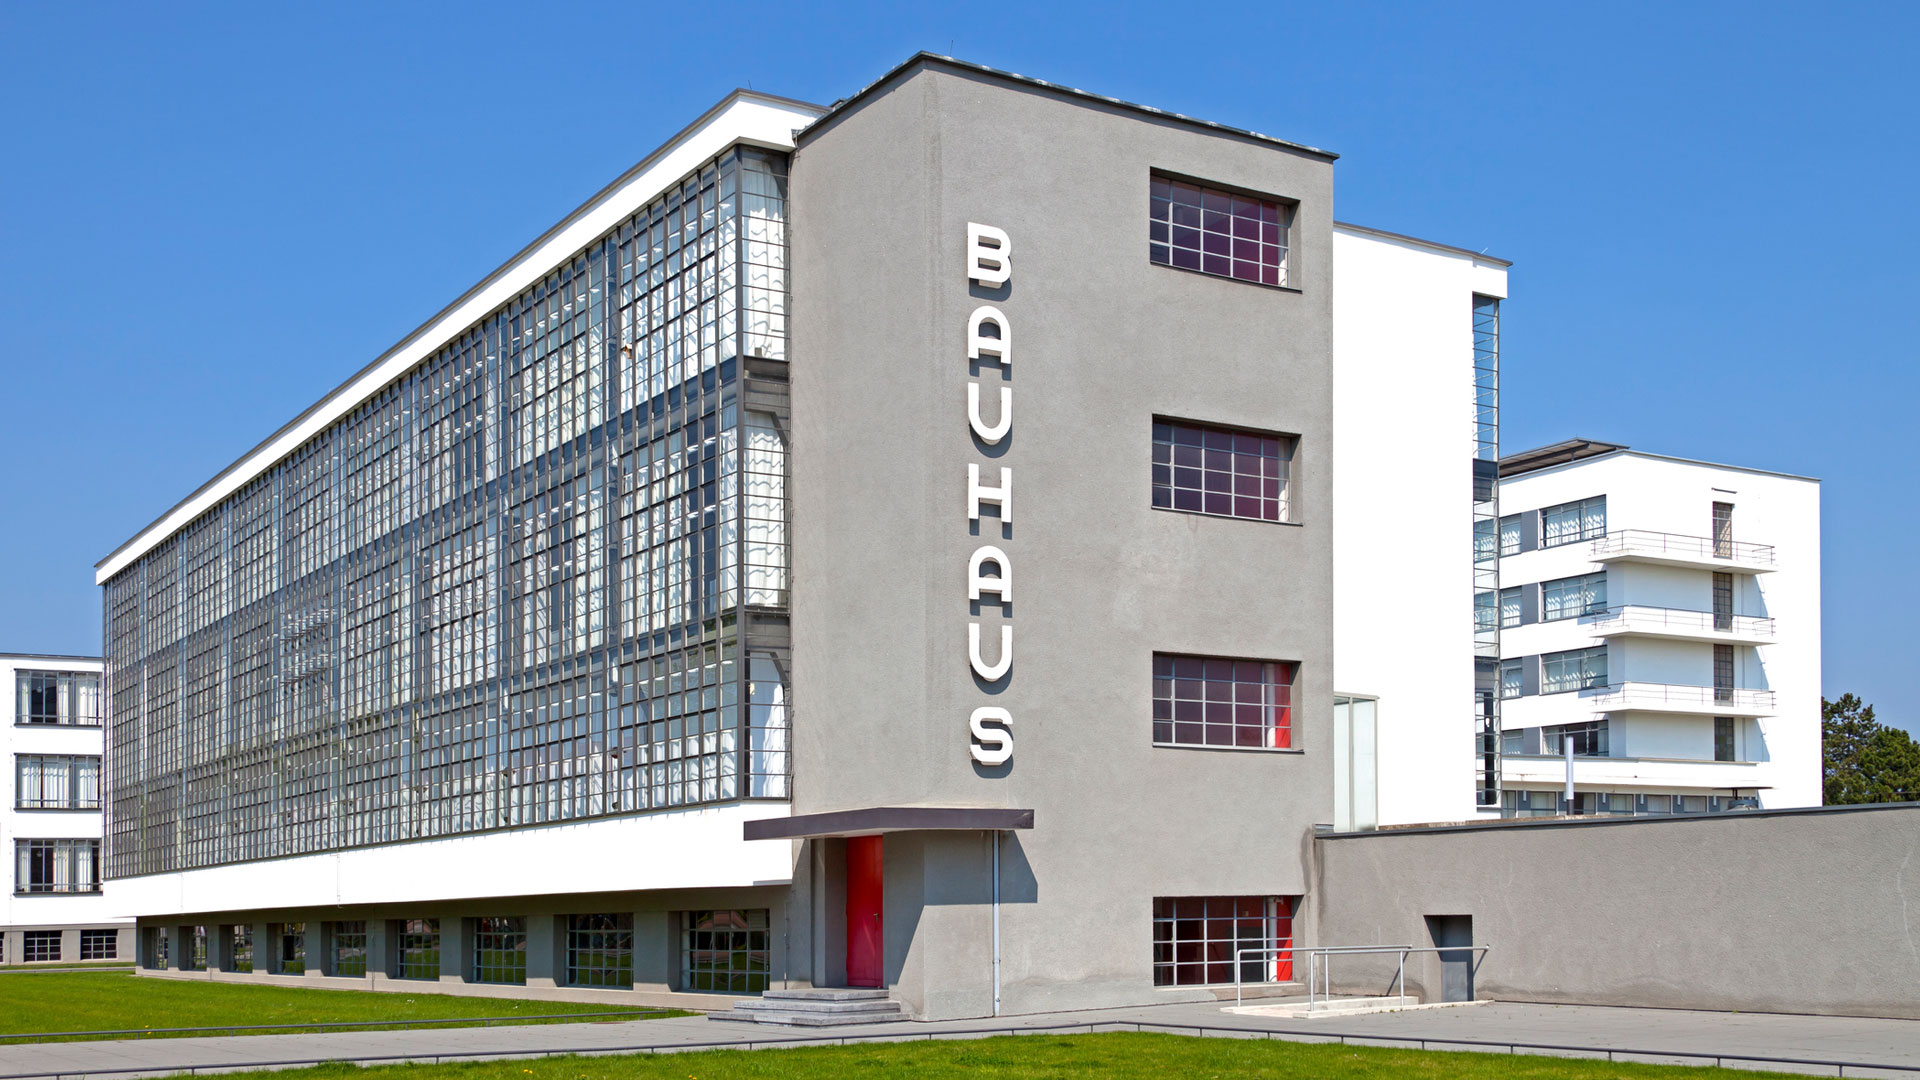 Bauhaus: What Was It And Why Is It Important Today